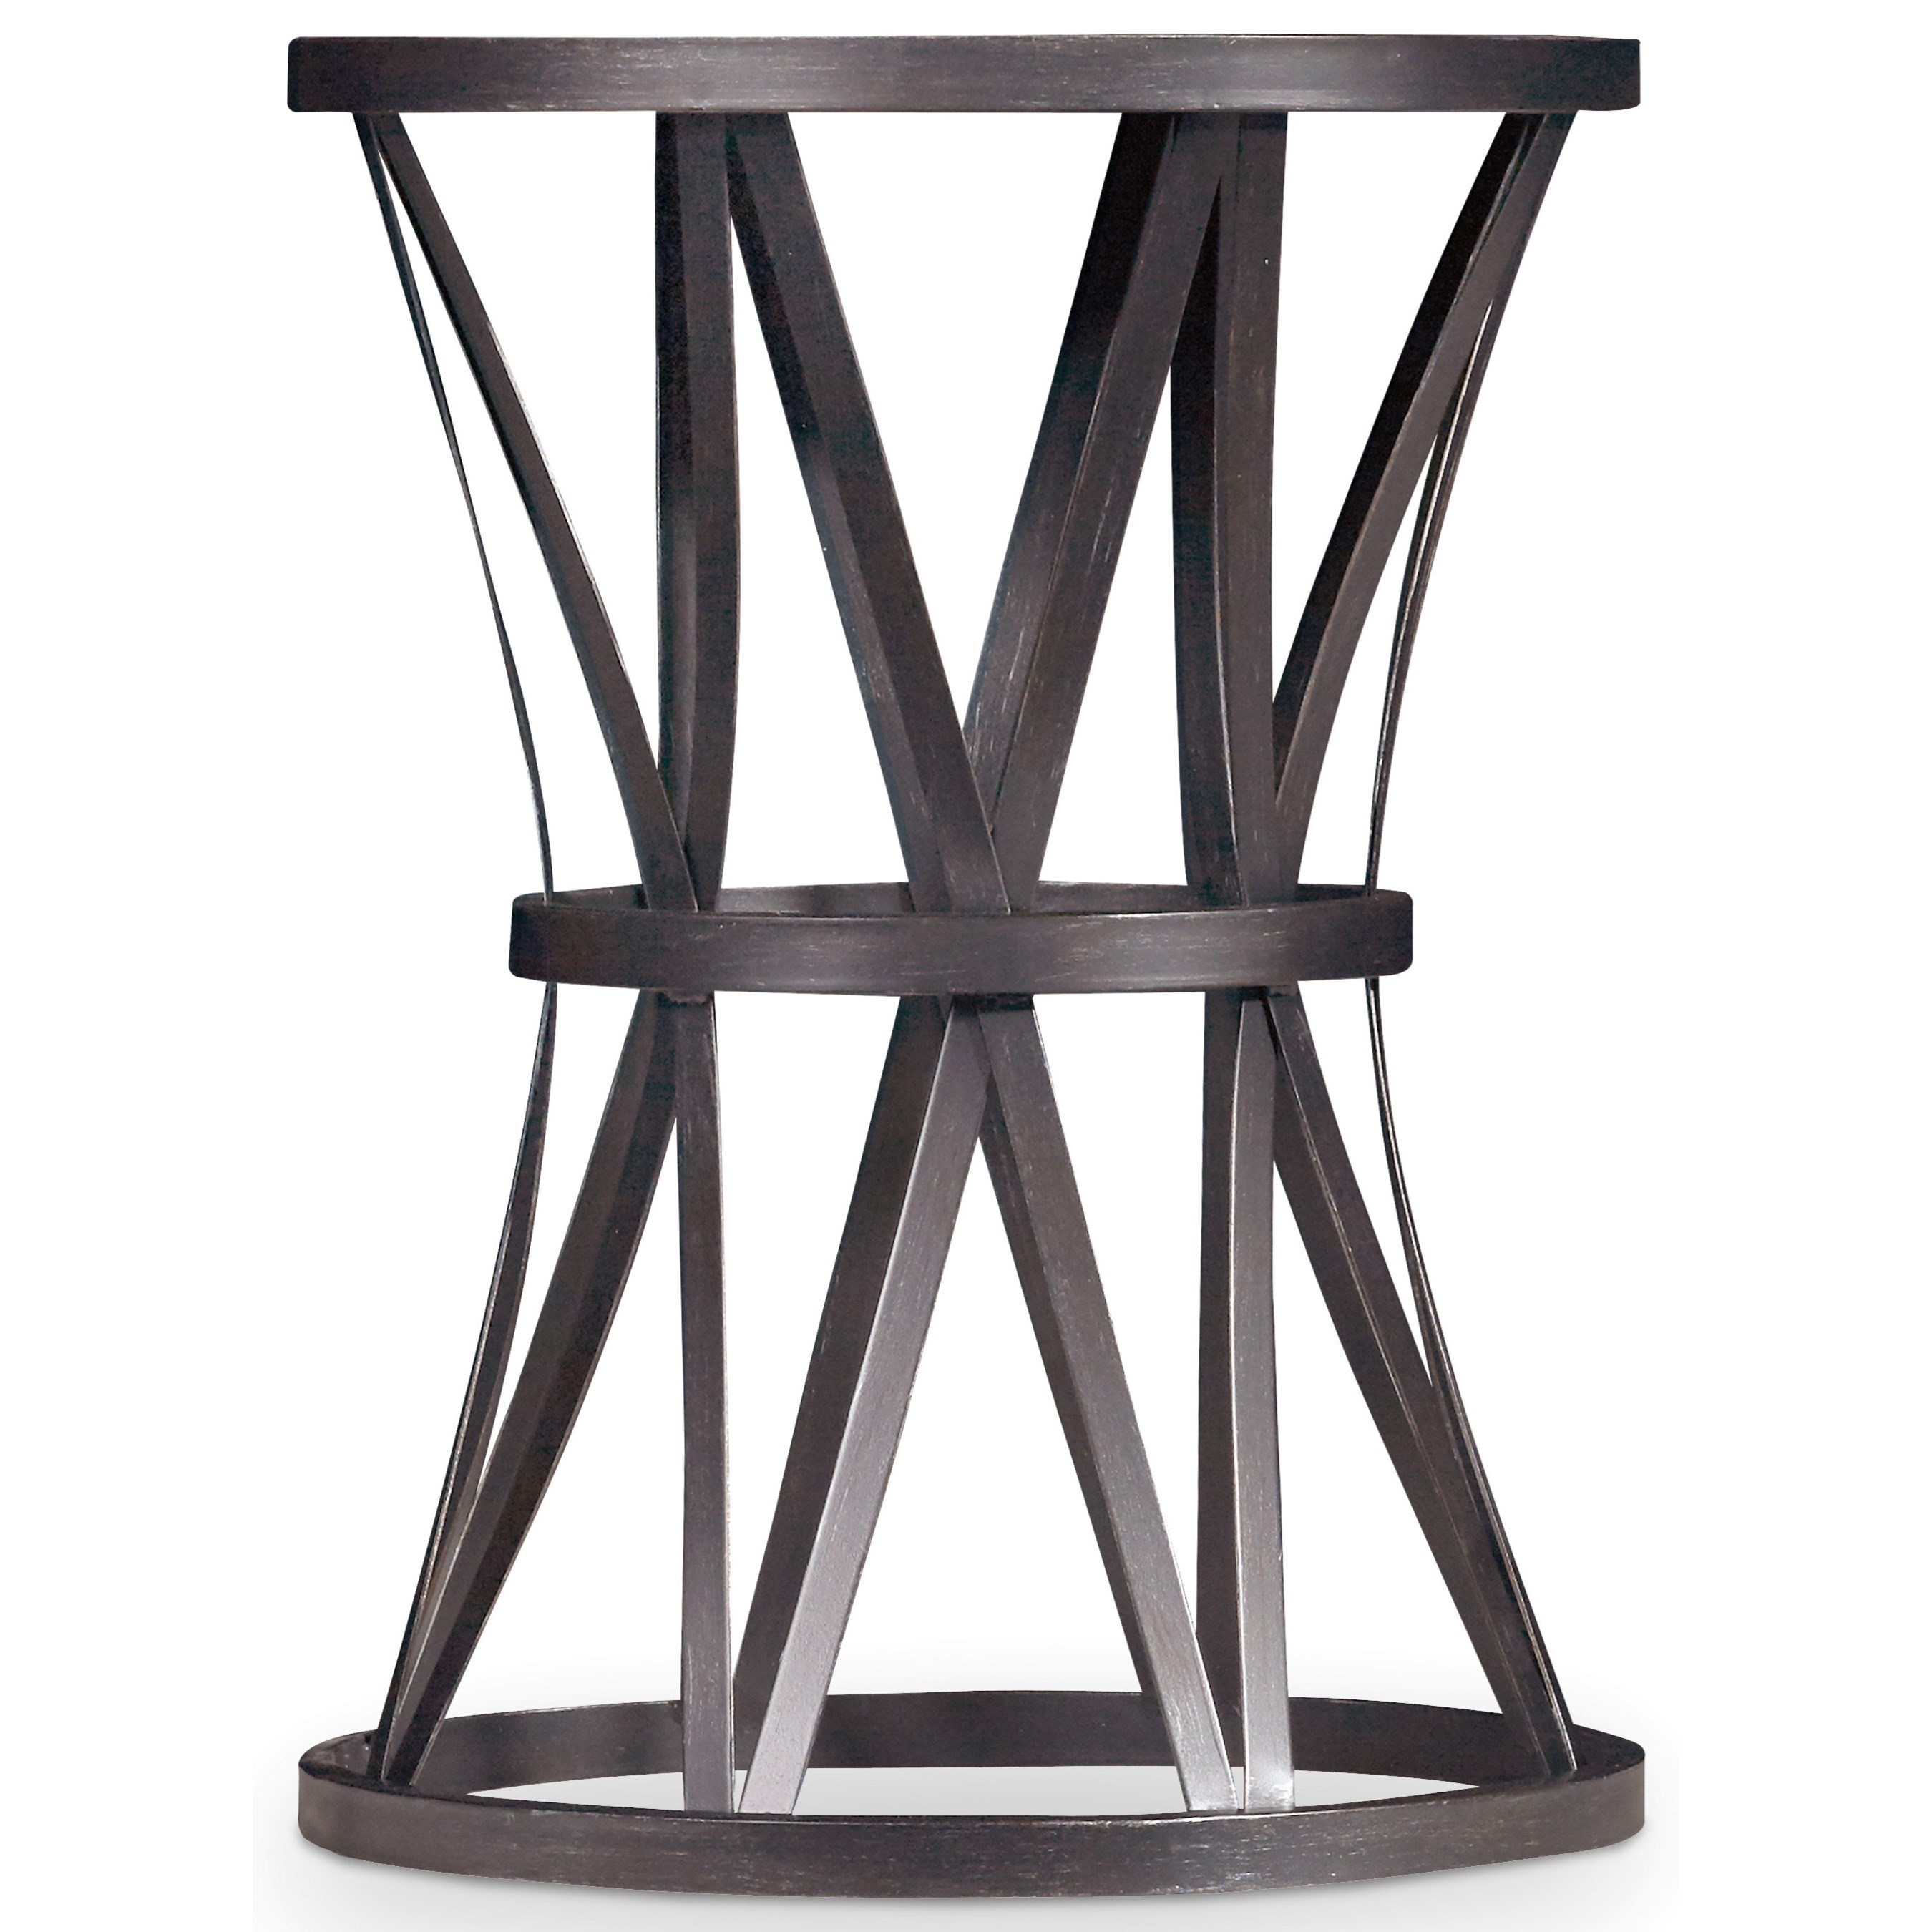 Hooker Furniture Chadwick Round End Table - Item Number: 5434-80116